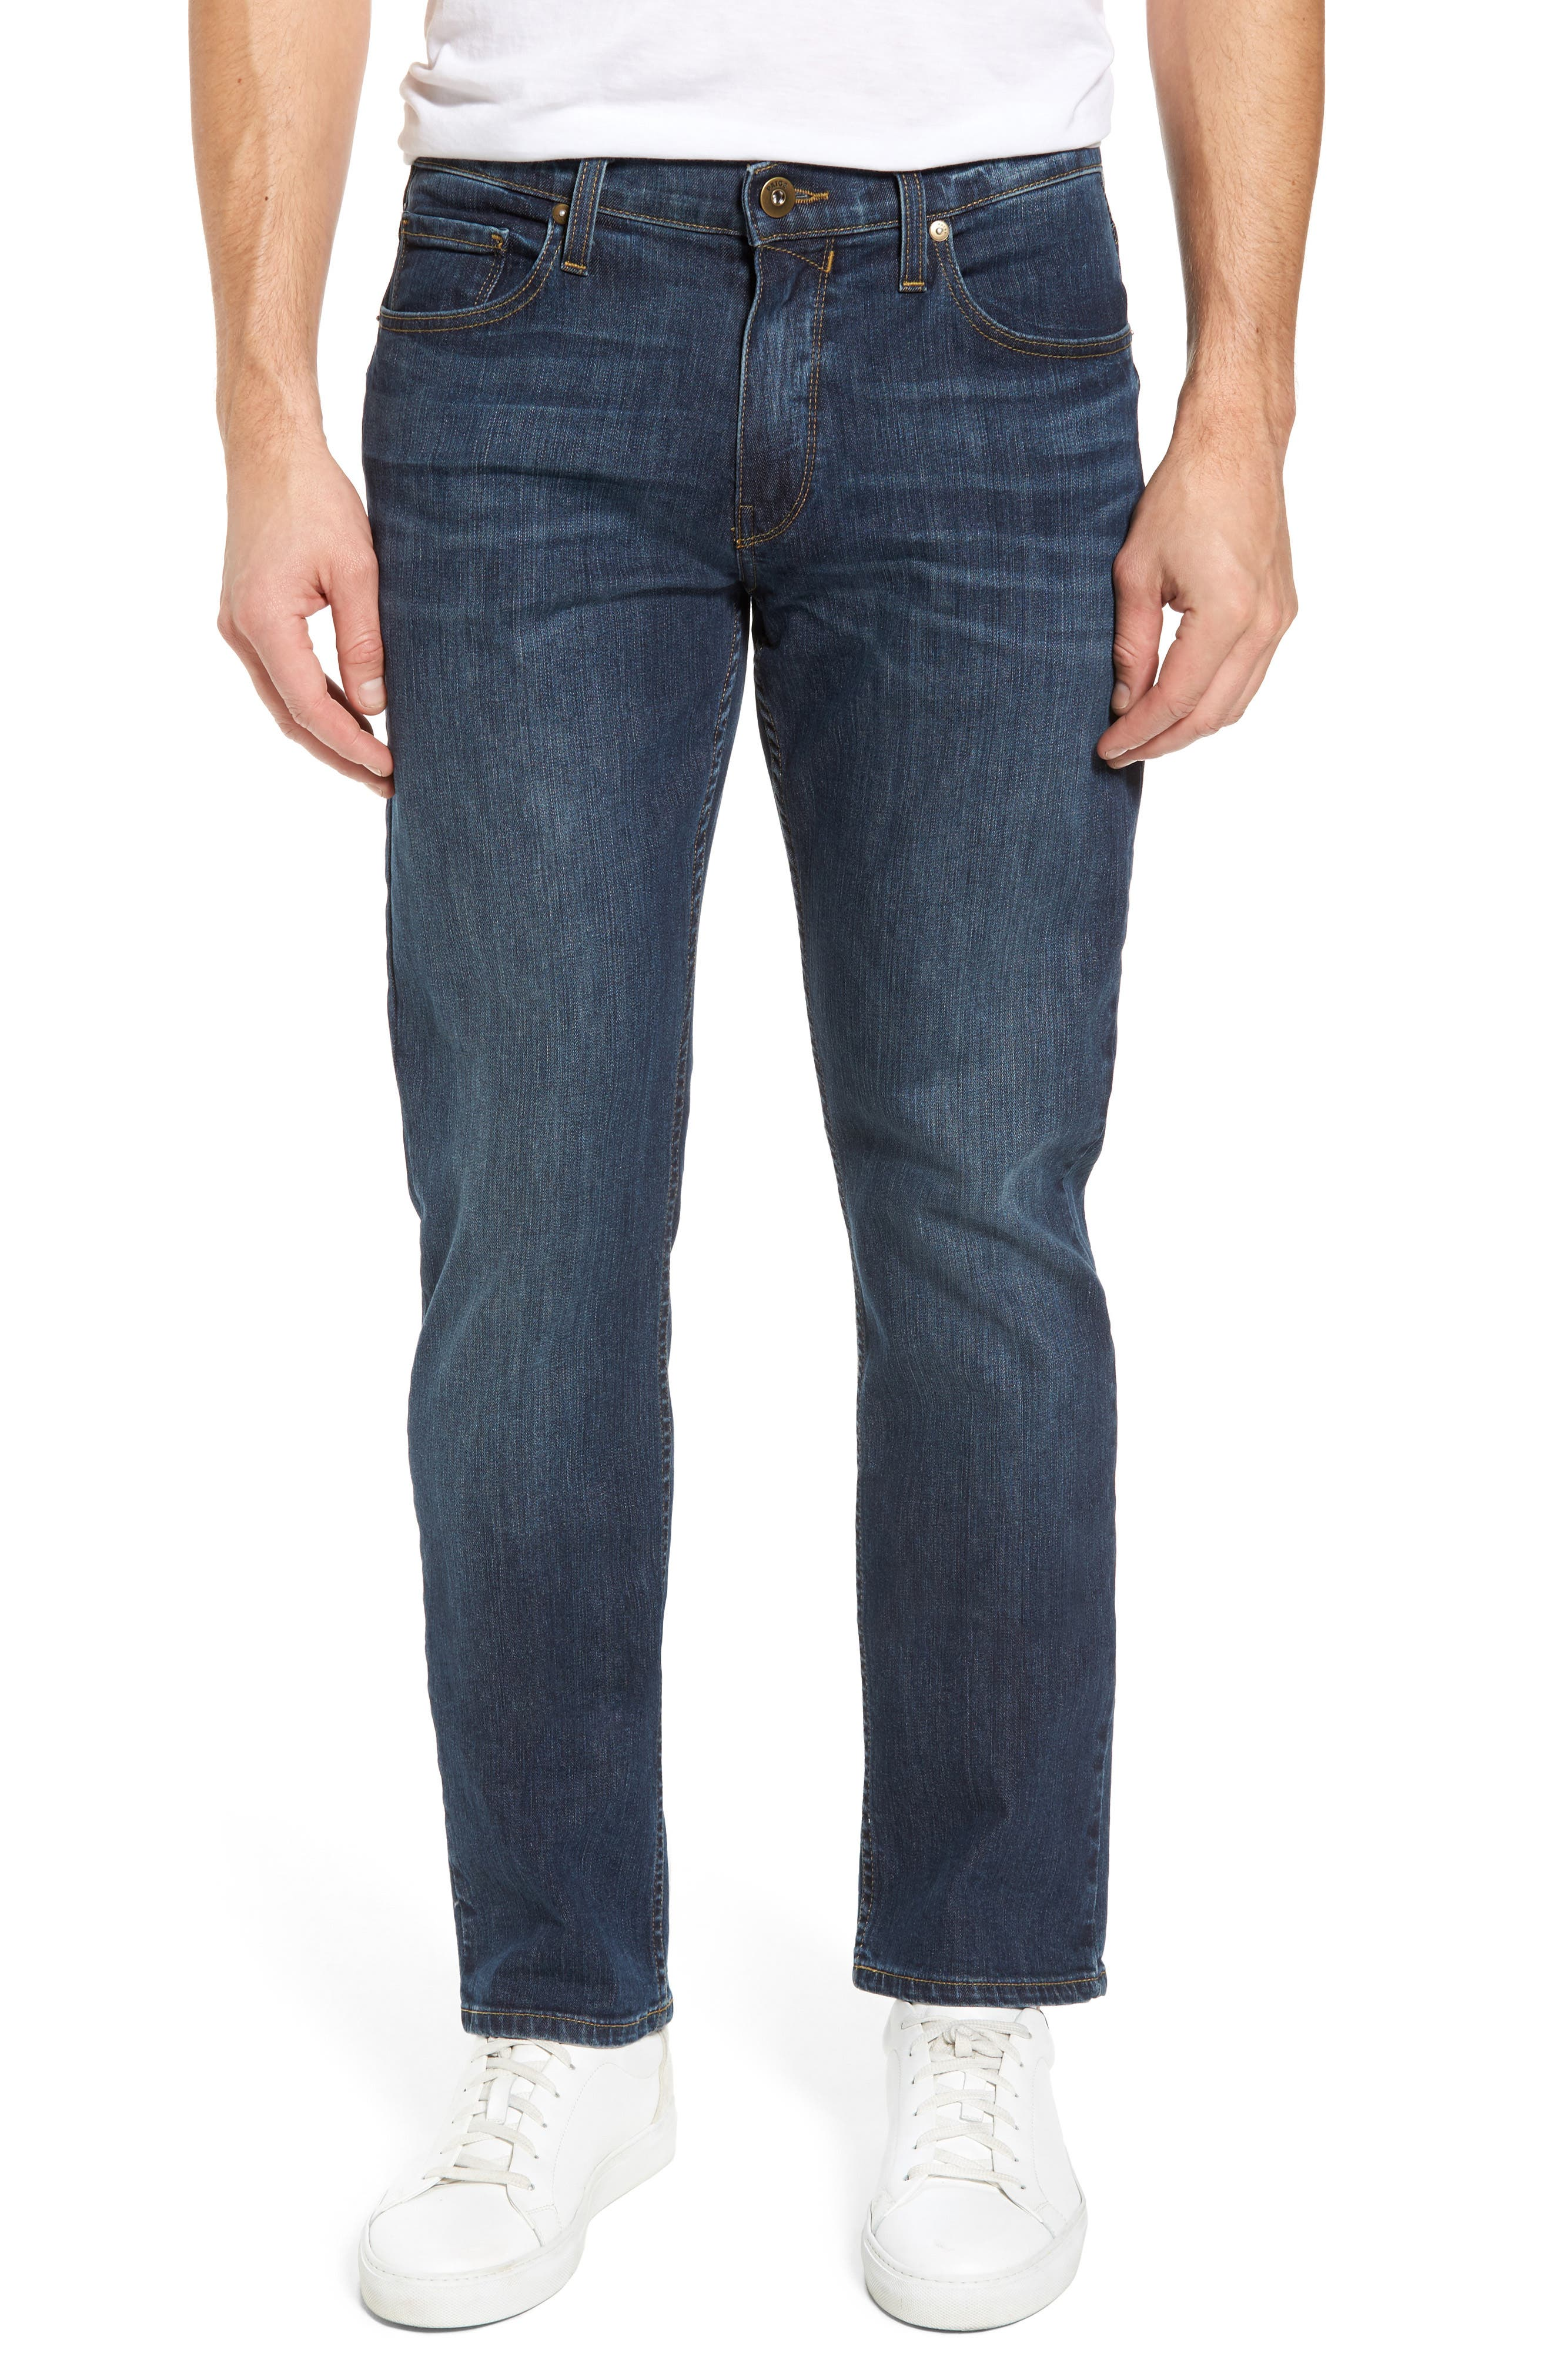 Legacy - Normandie Straight Fit Jeans,                             Main thumbnail 1, color,                             400